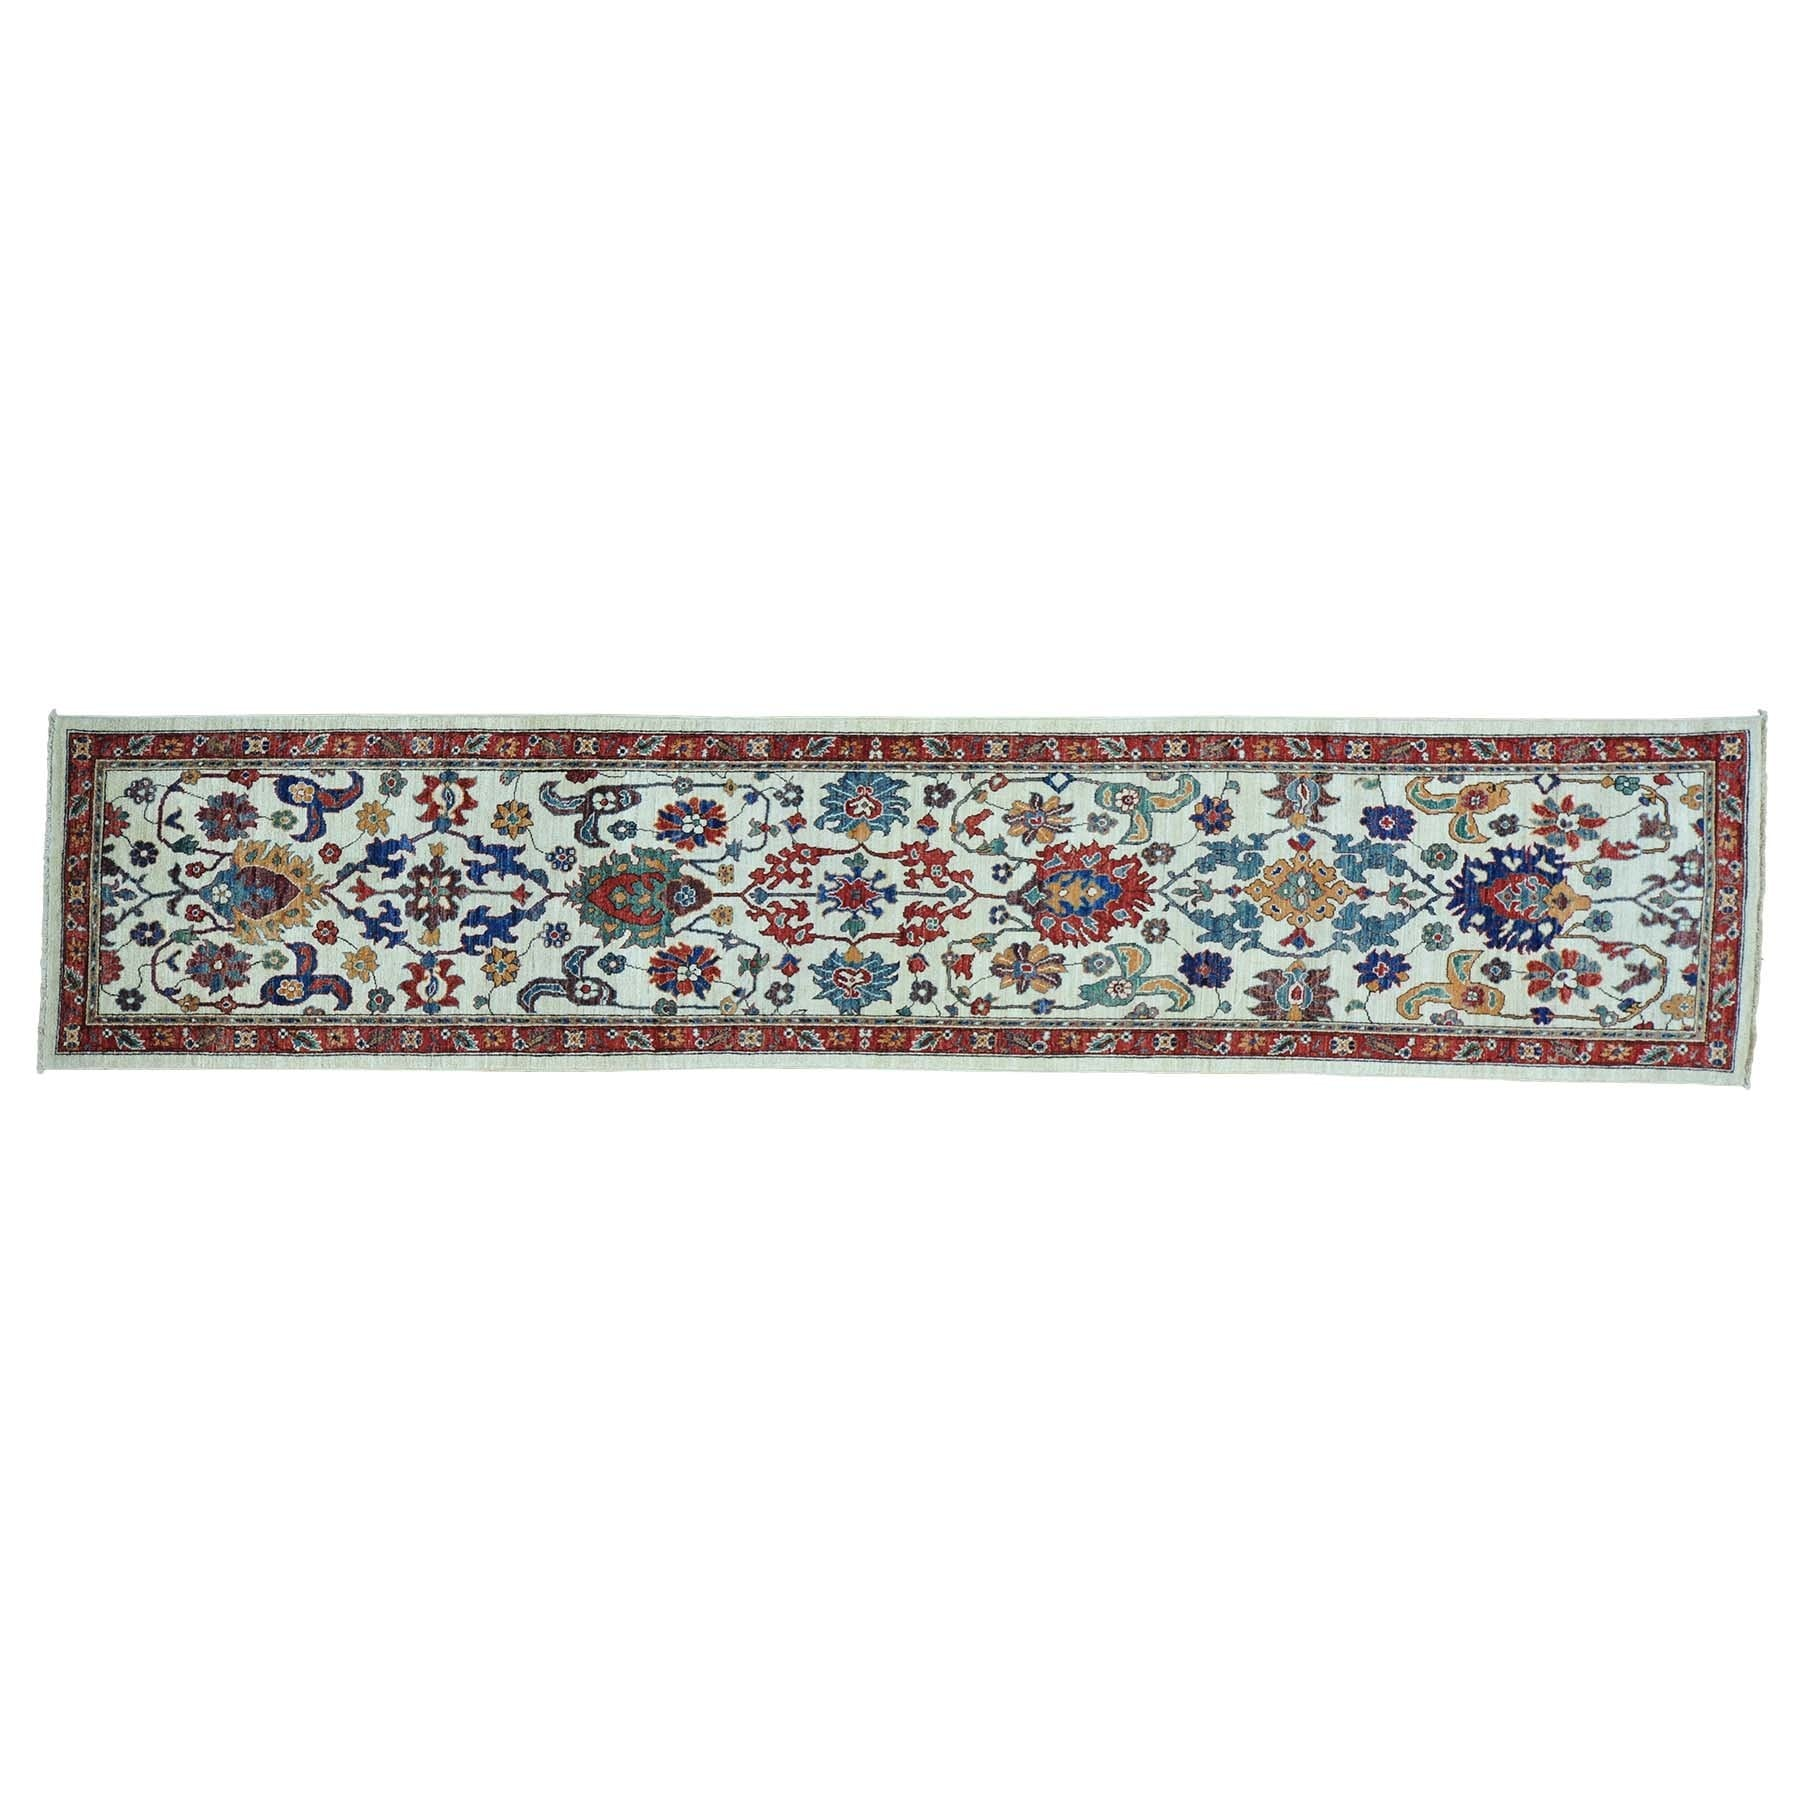 1800getarug Hand-knotted Runner Antiqued Sultanabad Orien...